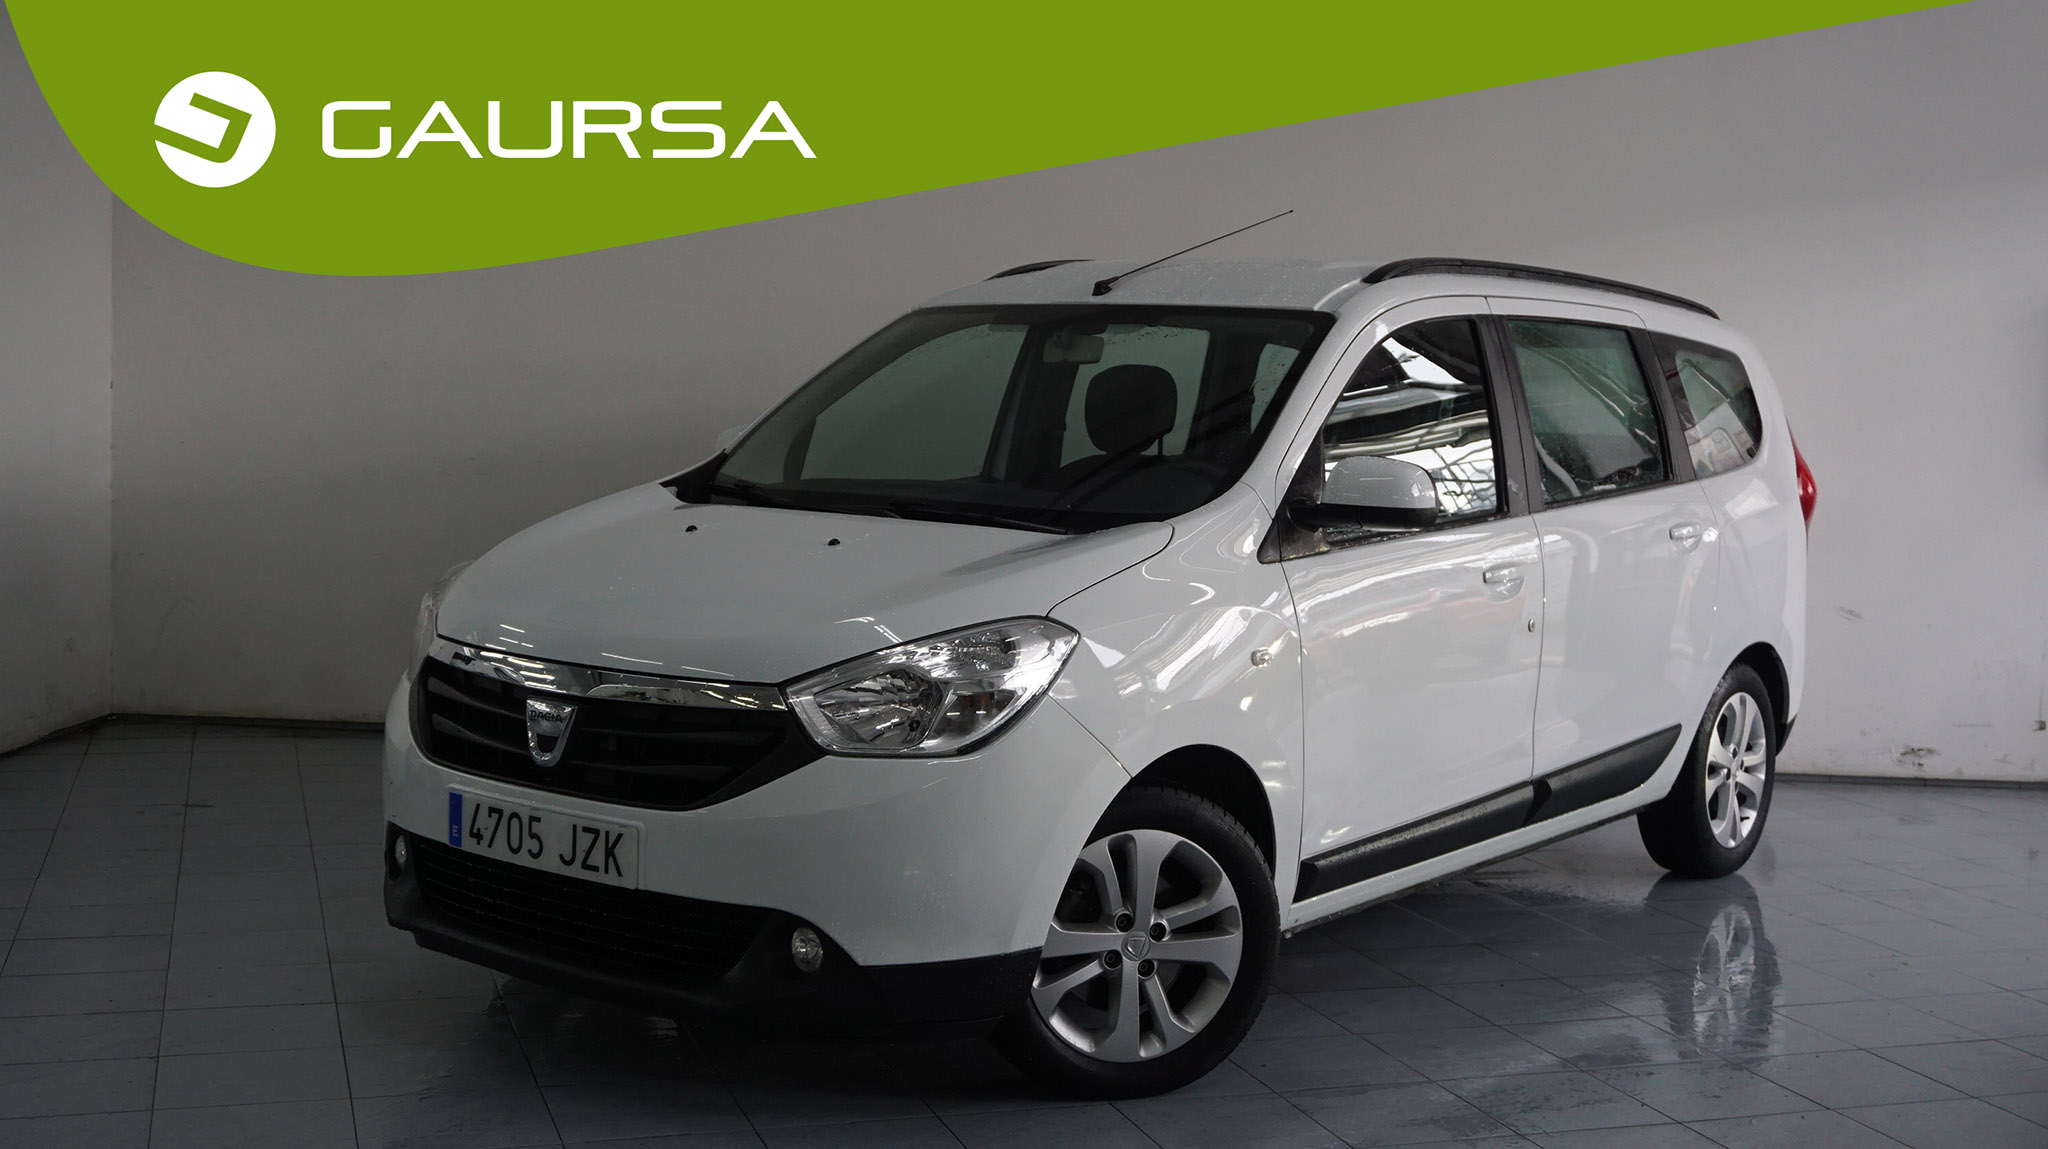 DACIA LODGY 1.5 DCI LAUREATE 79KW